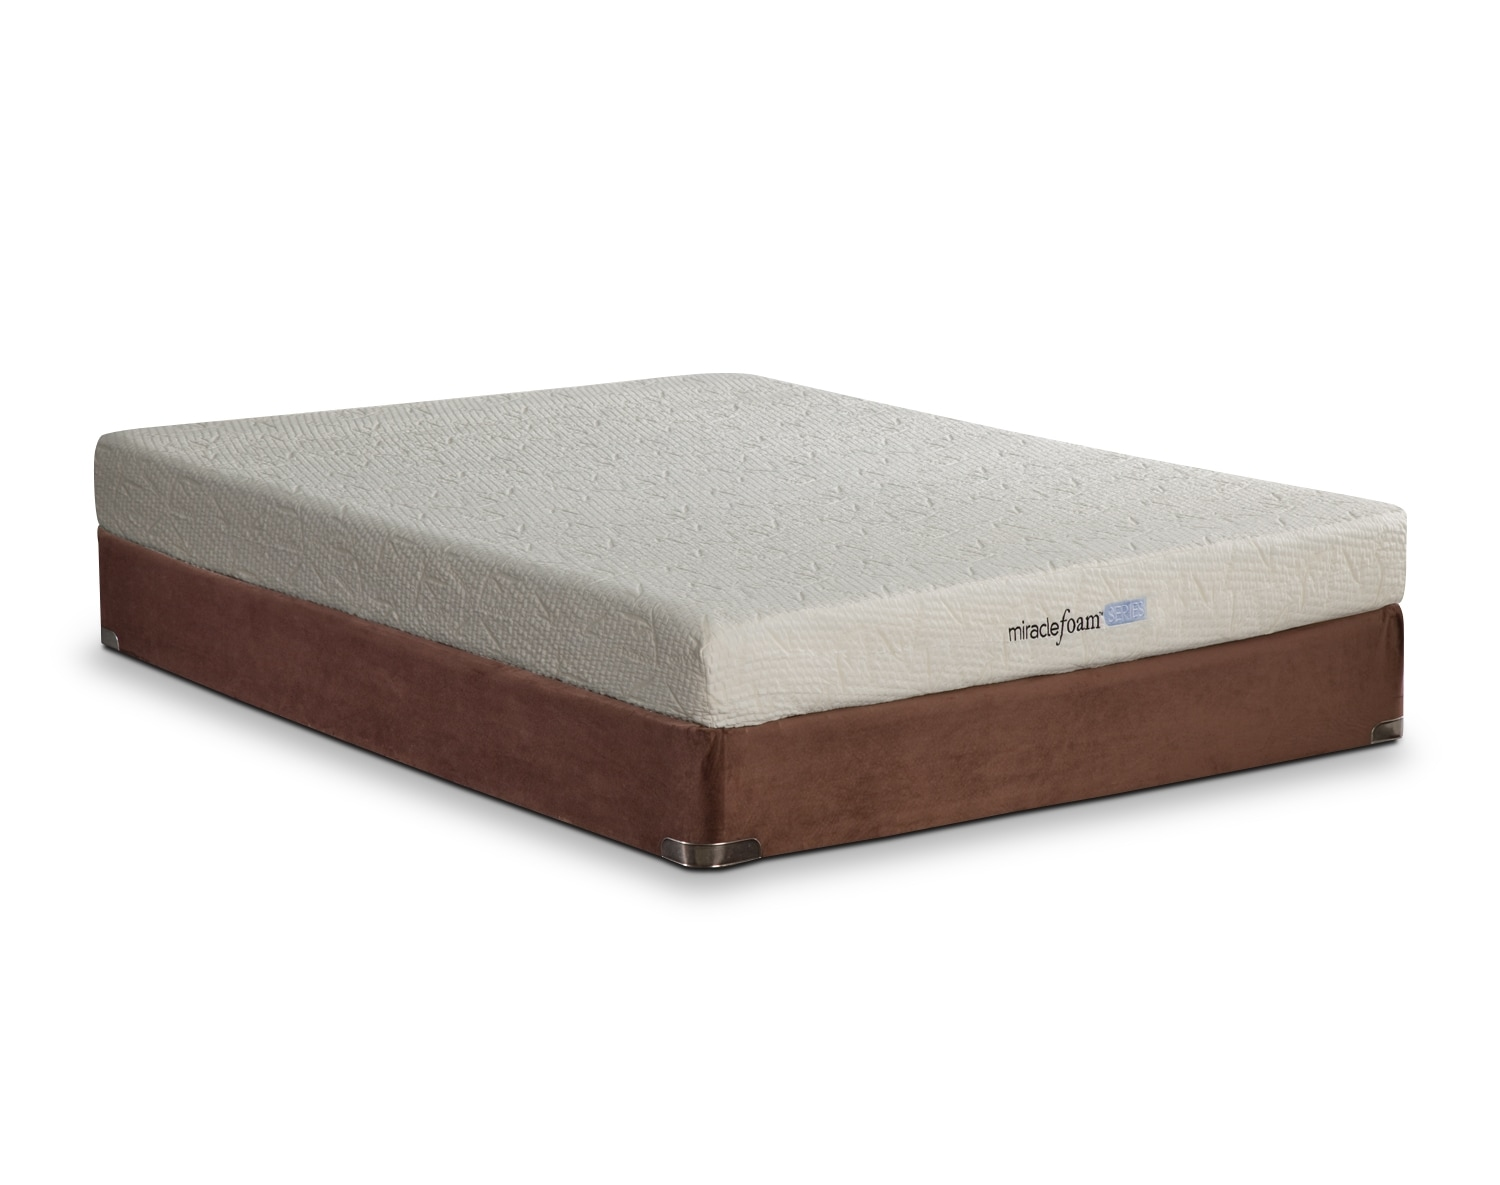 Mattresses and Bedding - The Piper Collection - King Mattress